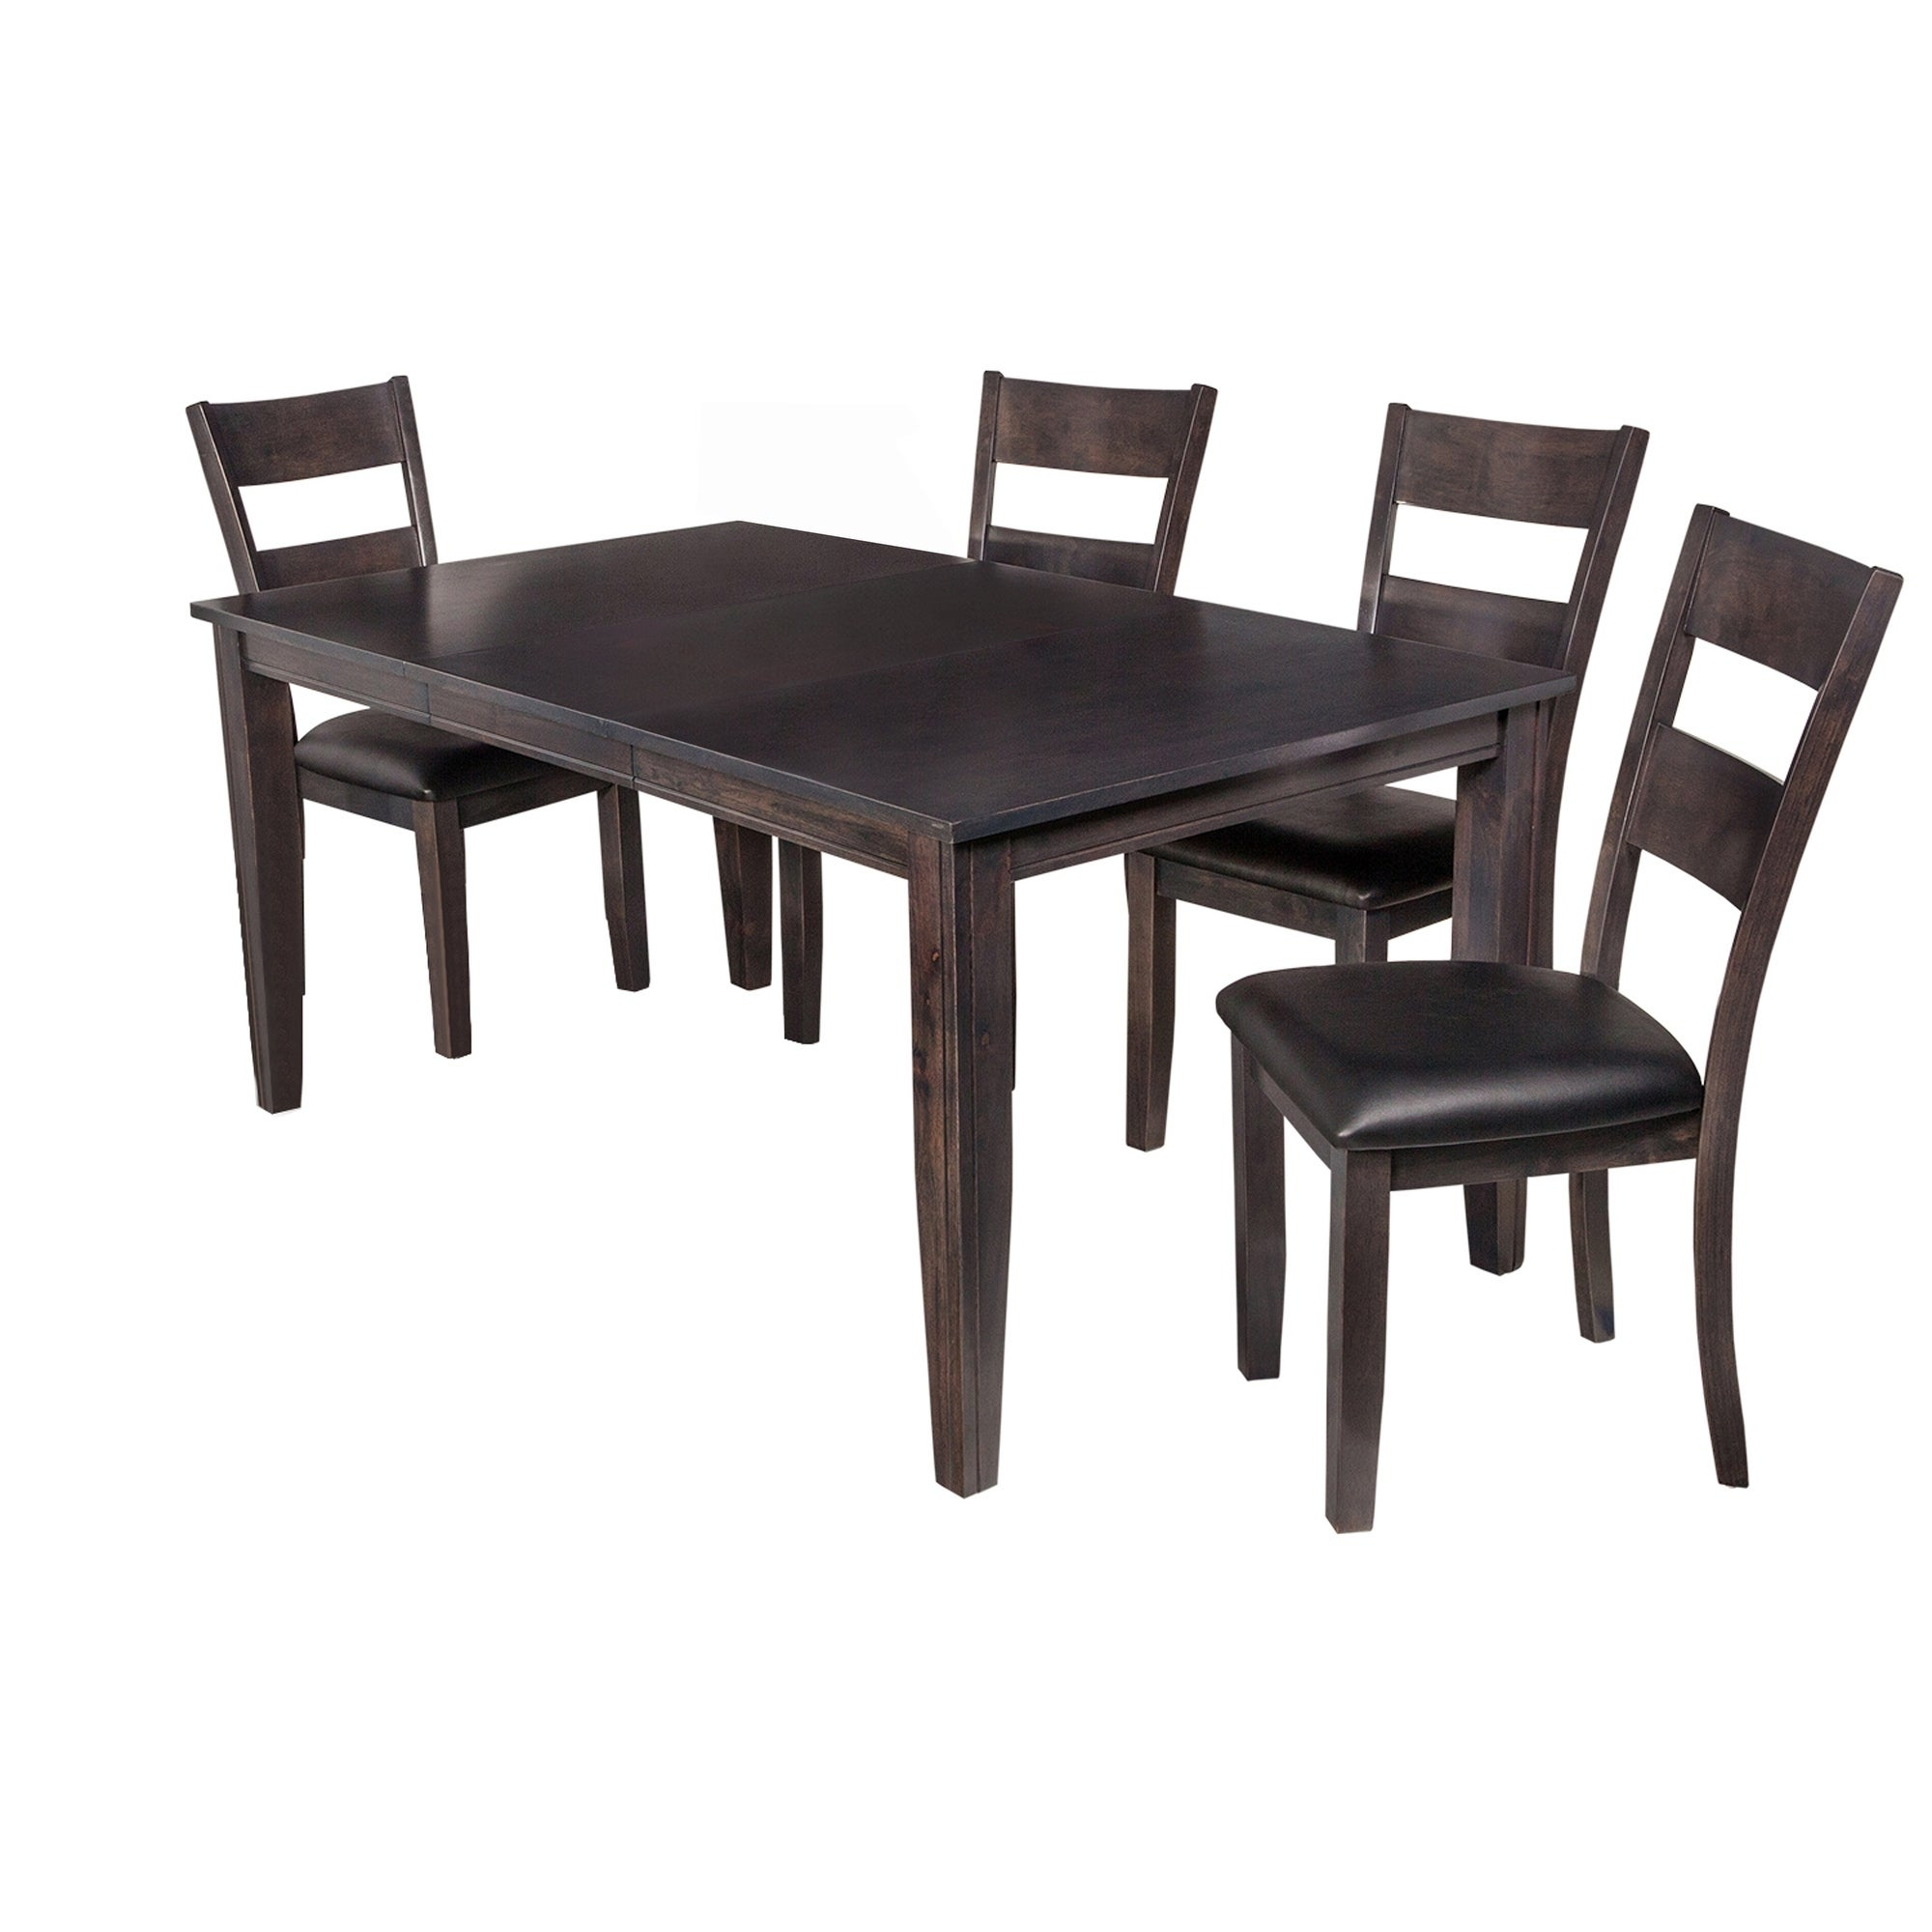 "5 Piece Solid Wood Dining Set ""aden"", Modern Kitchen Table Set, Dark Gray Pertaining To 2018 Adan 5 Piece Solid Wood Dining Sets (Set Of 5) (Image 2 of 20)"